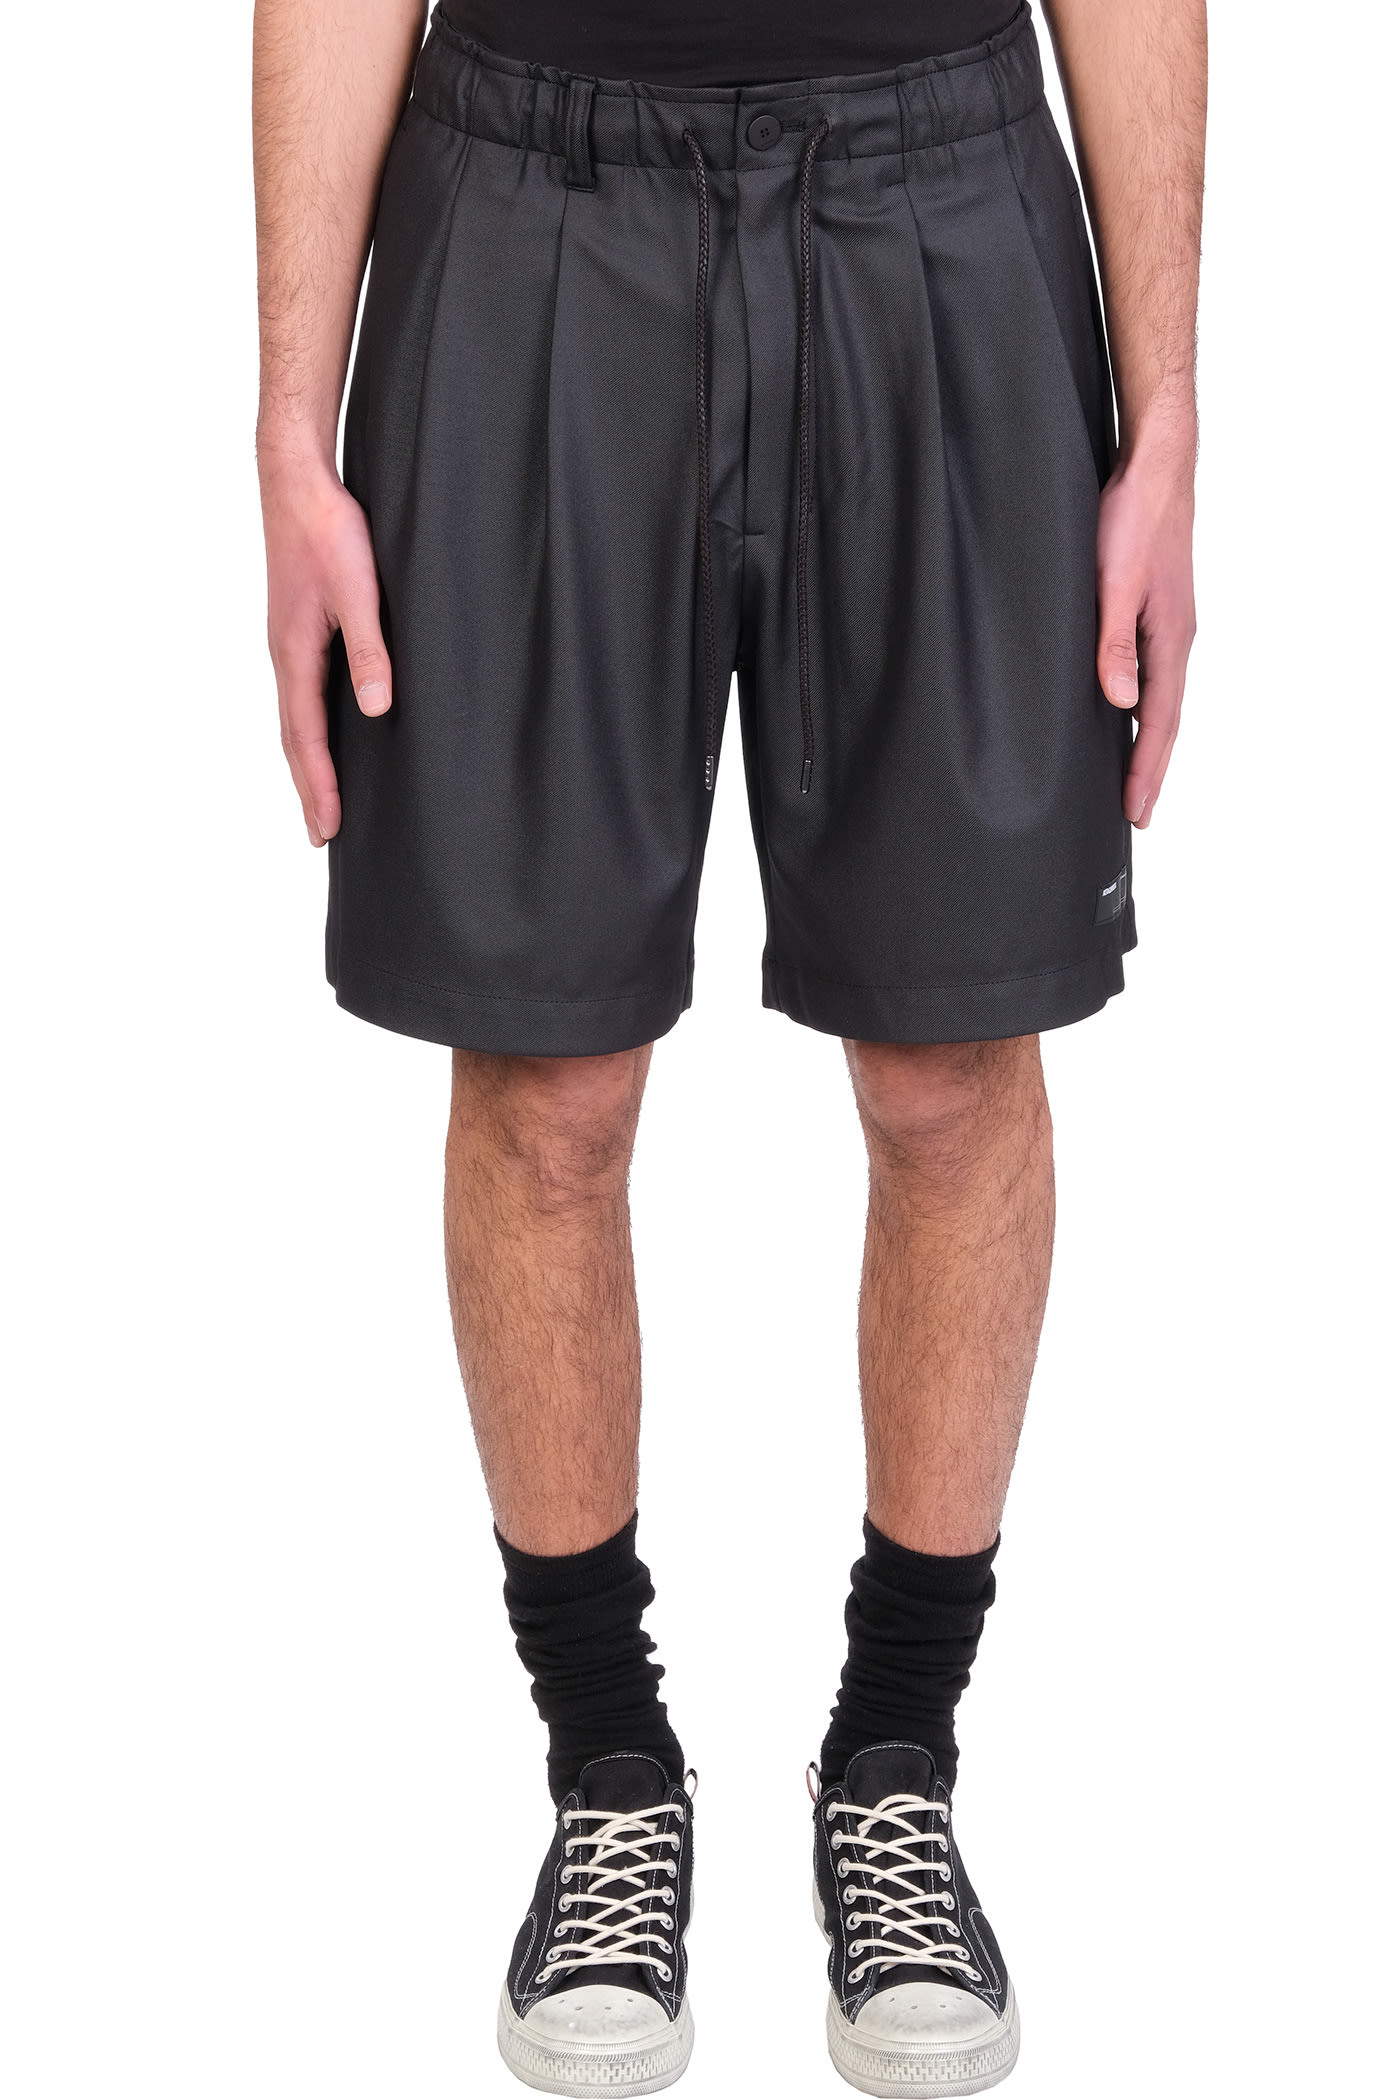 Shorts In Black Polyester